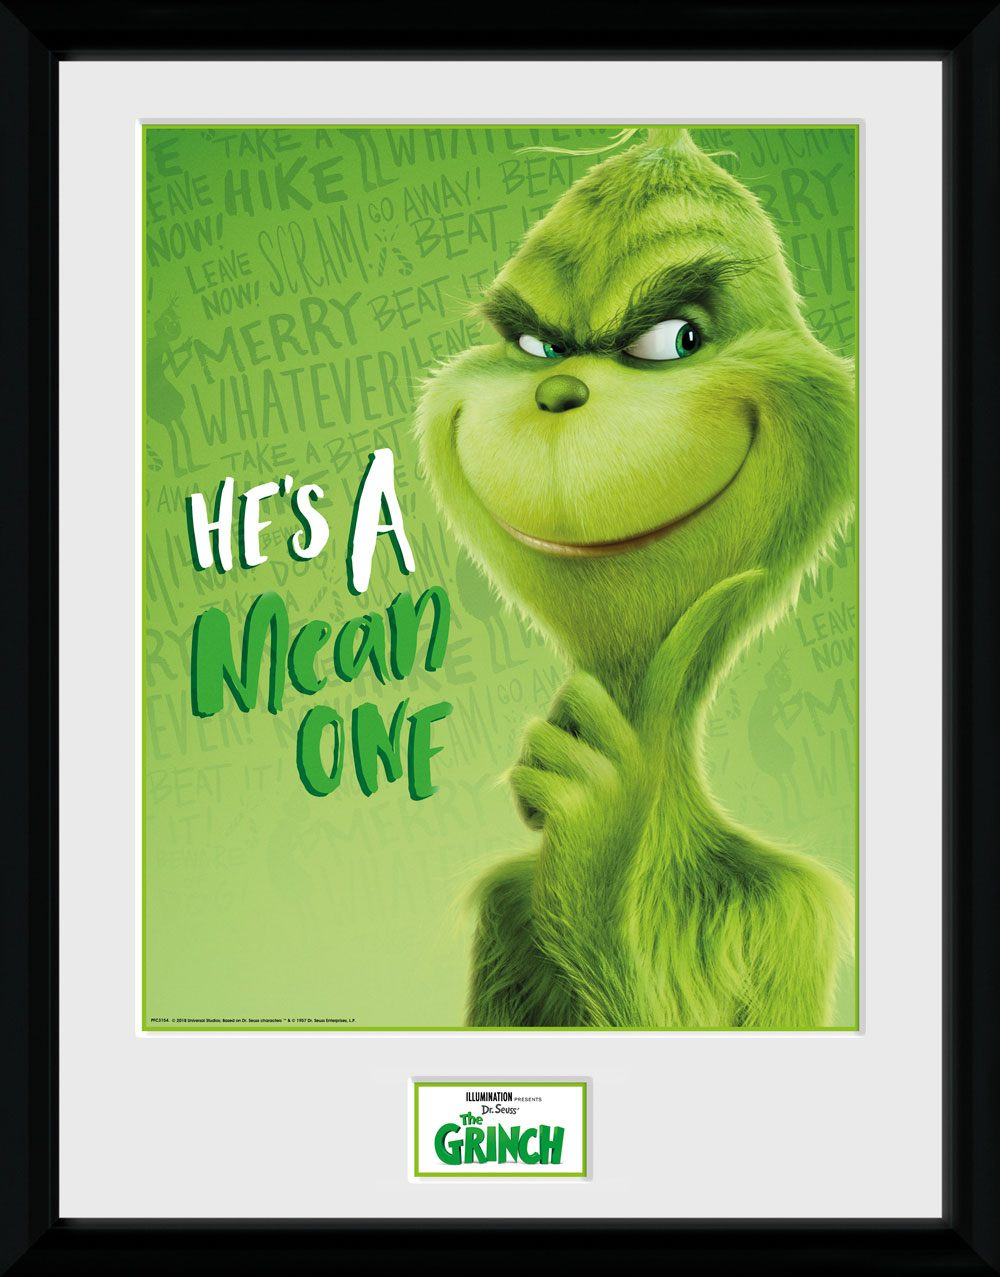 The Grinch (2018) Framed Poster Solo 45 x 34 cm